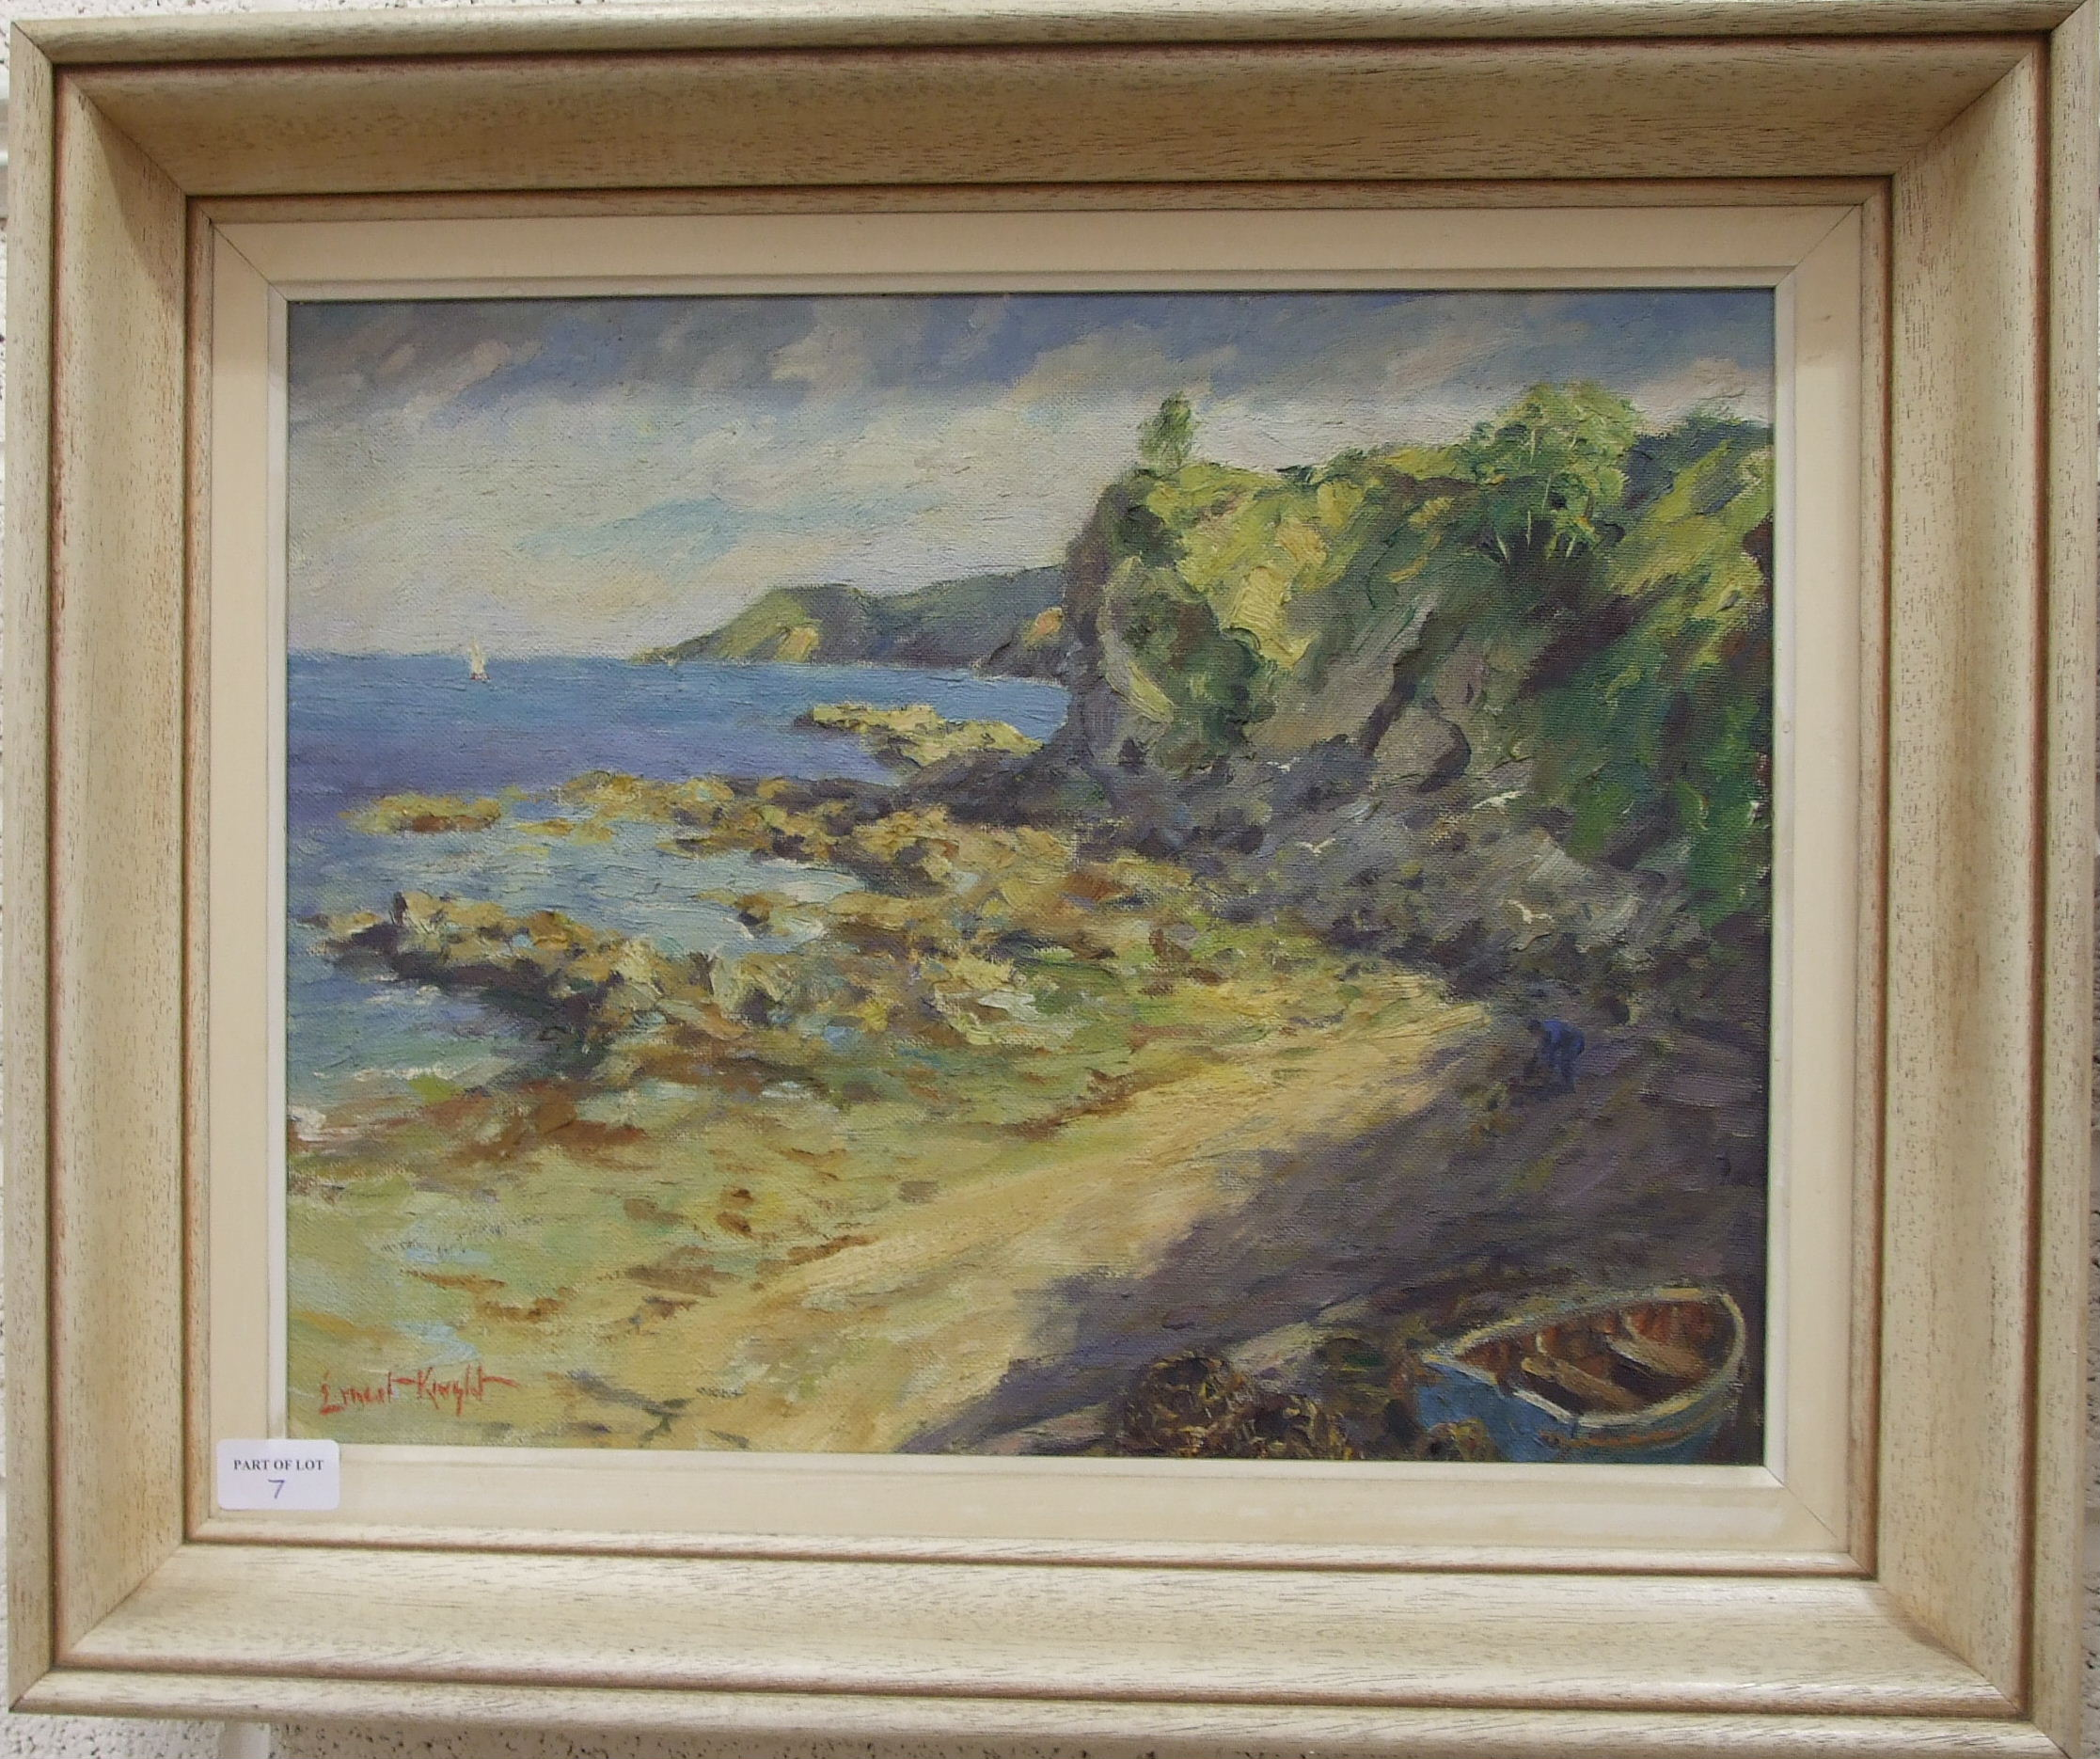 •Ernest Knight (1915-1995) COASTAL SCENE WITH BUILDING OVERLOOKING A ROCKY SHORE Signed oil on - Image 3 of 3